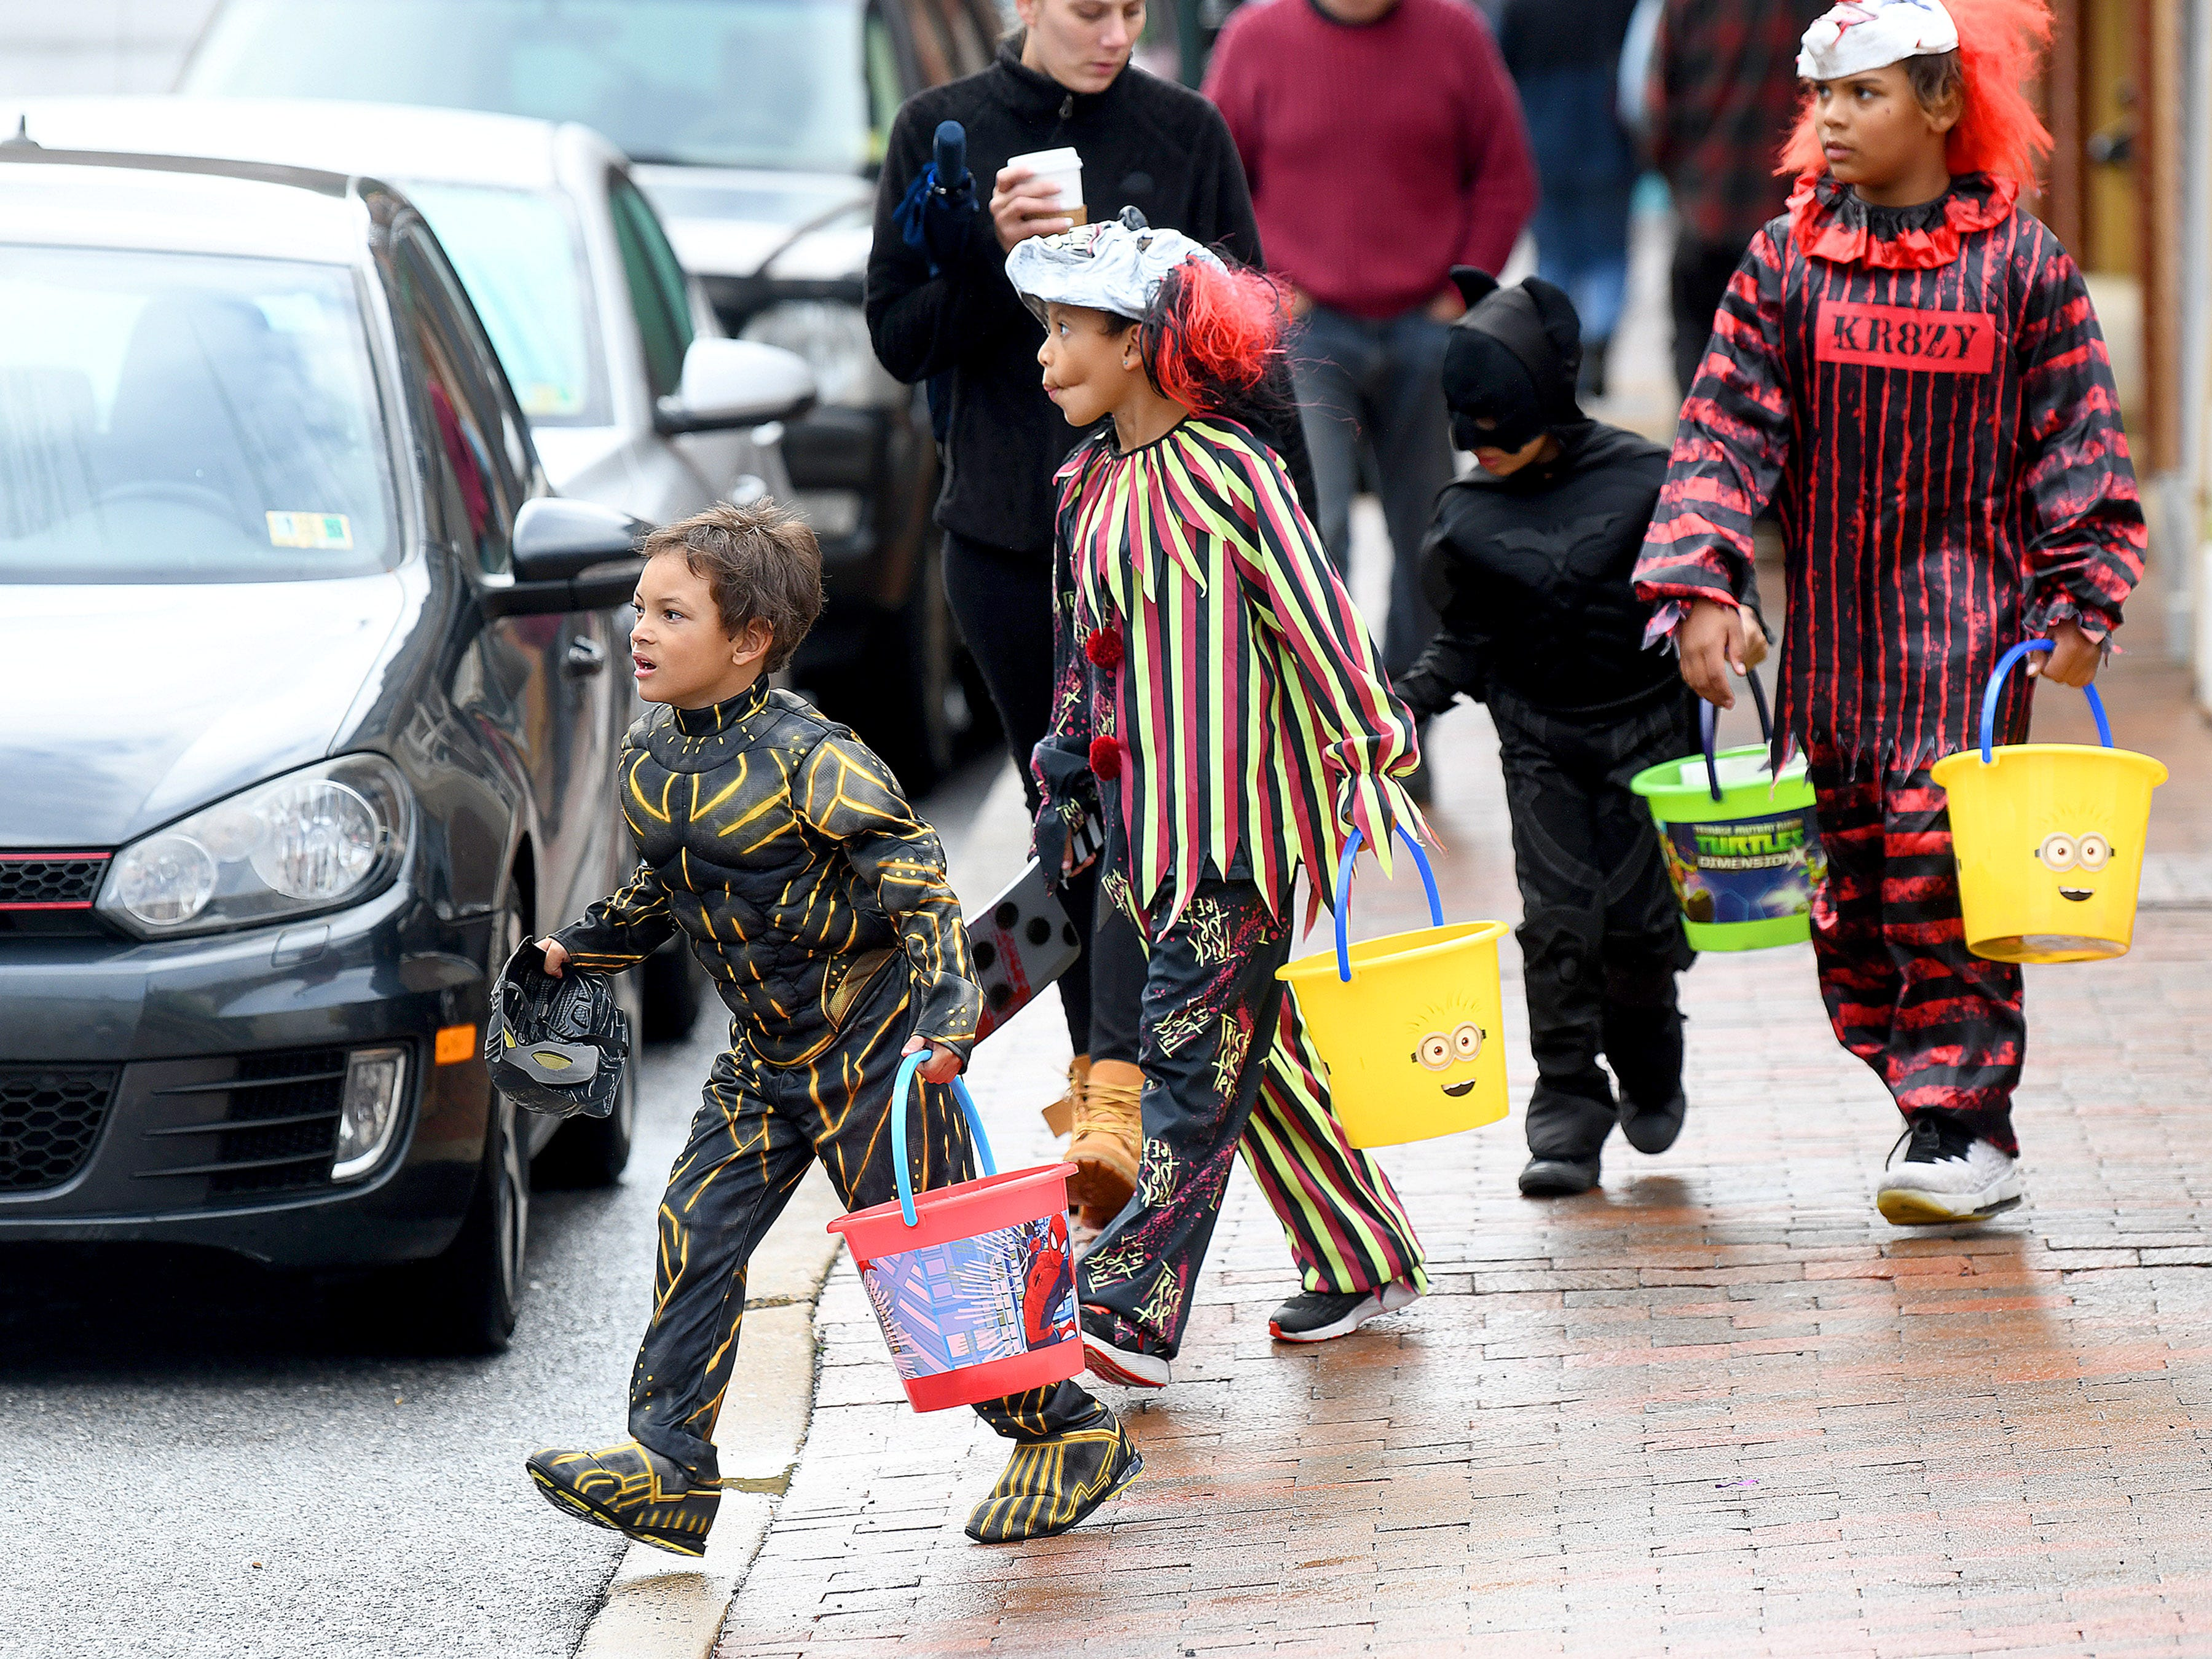 """Crazy"" clowns and superheroes mix together while trick-or-treating in downtown Staunton on Saturday, Oct. 27, 2018."